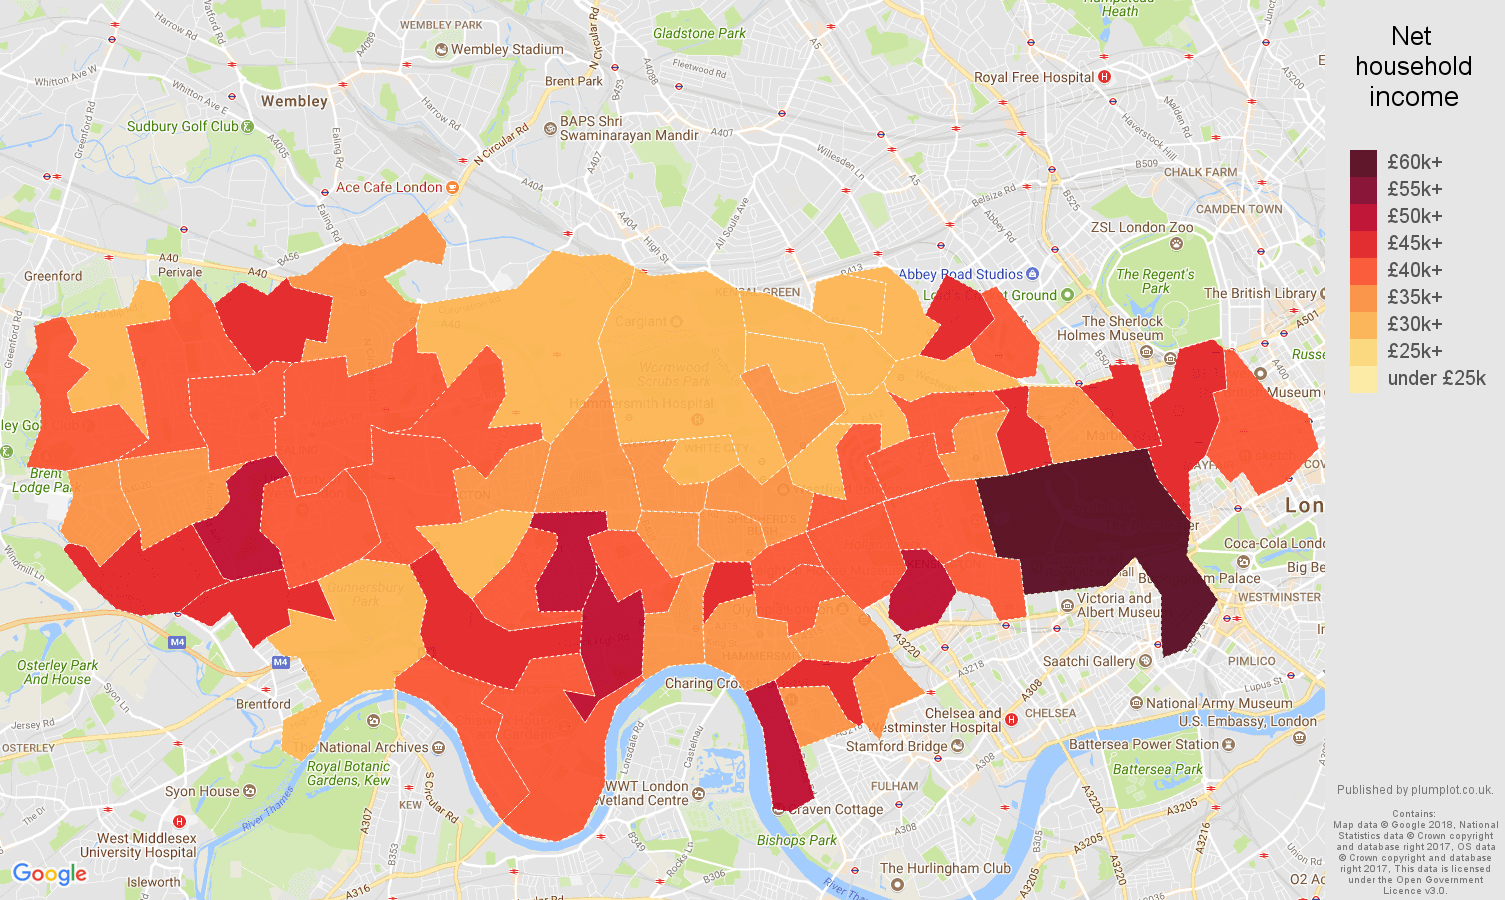 West London net household income map